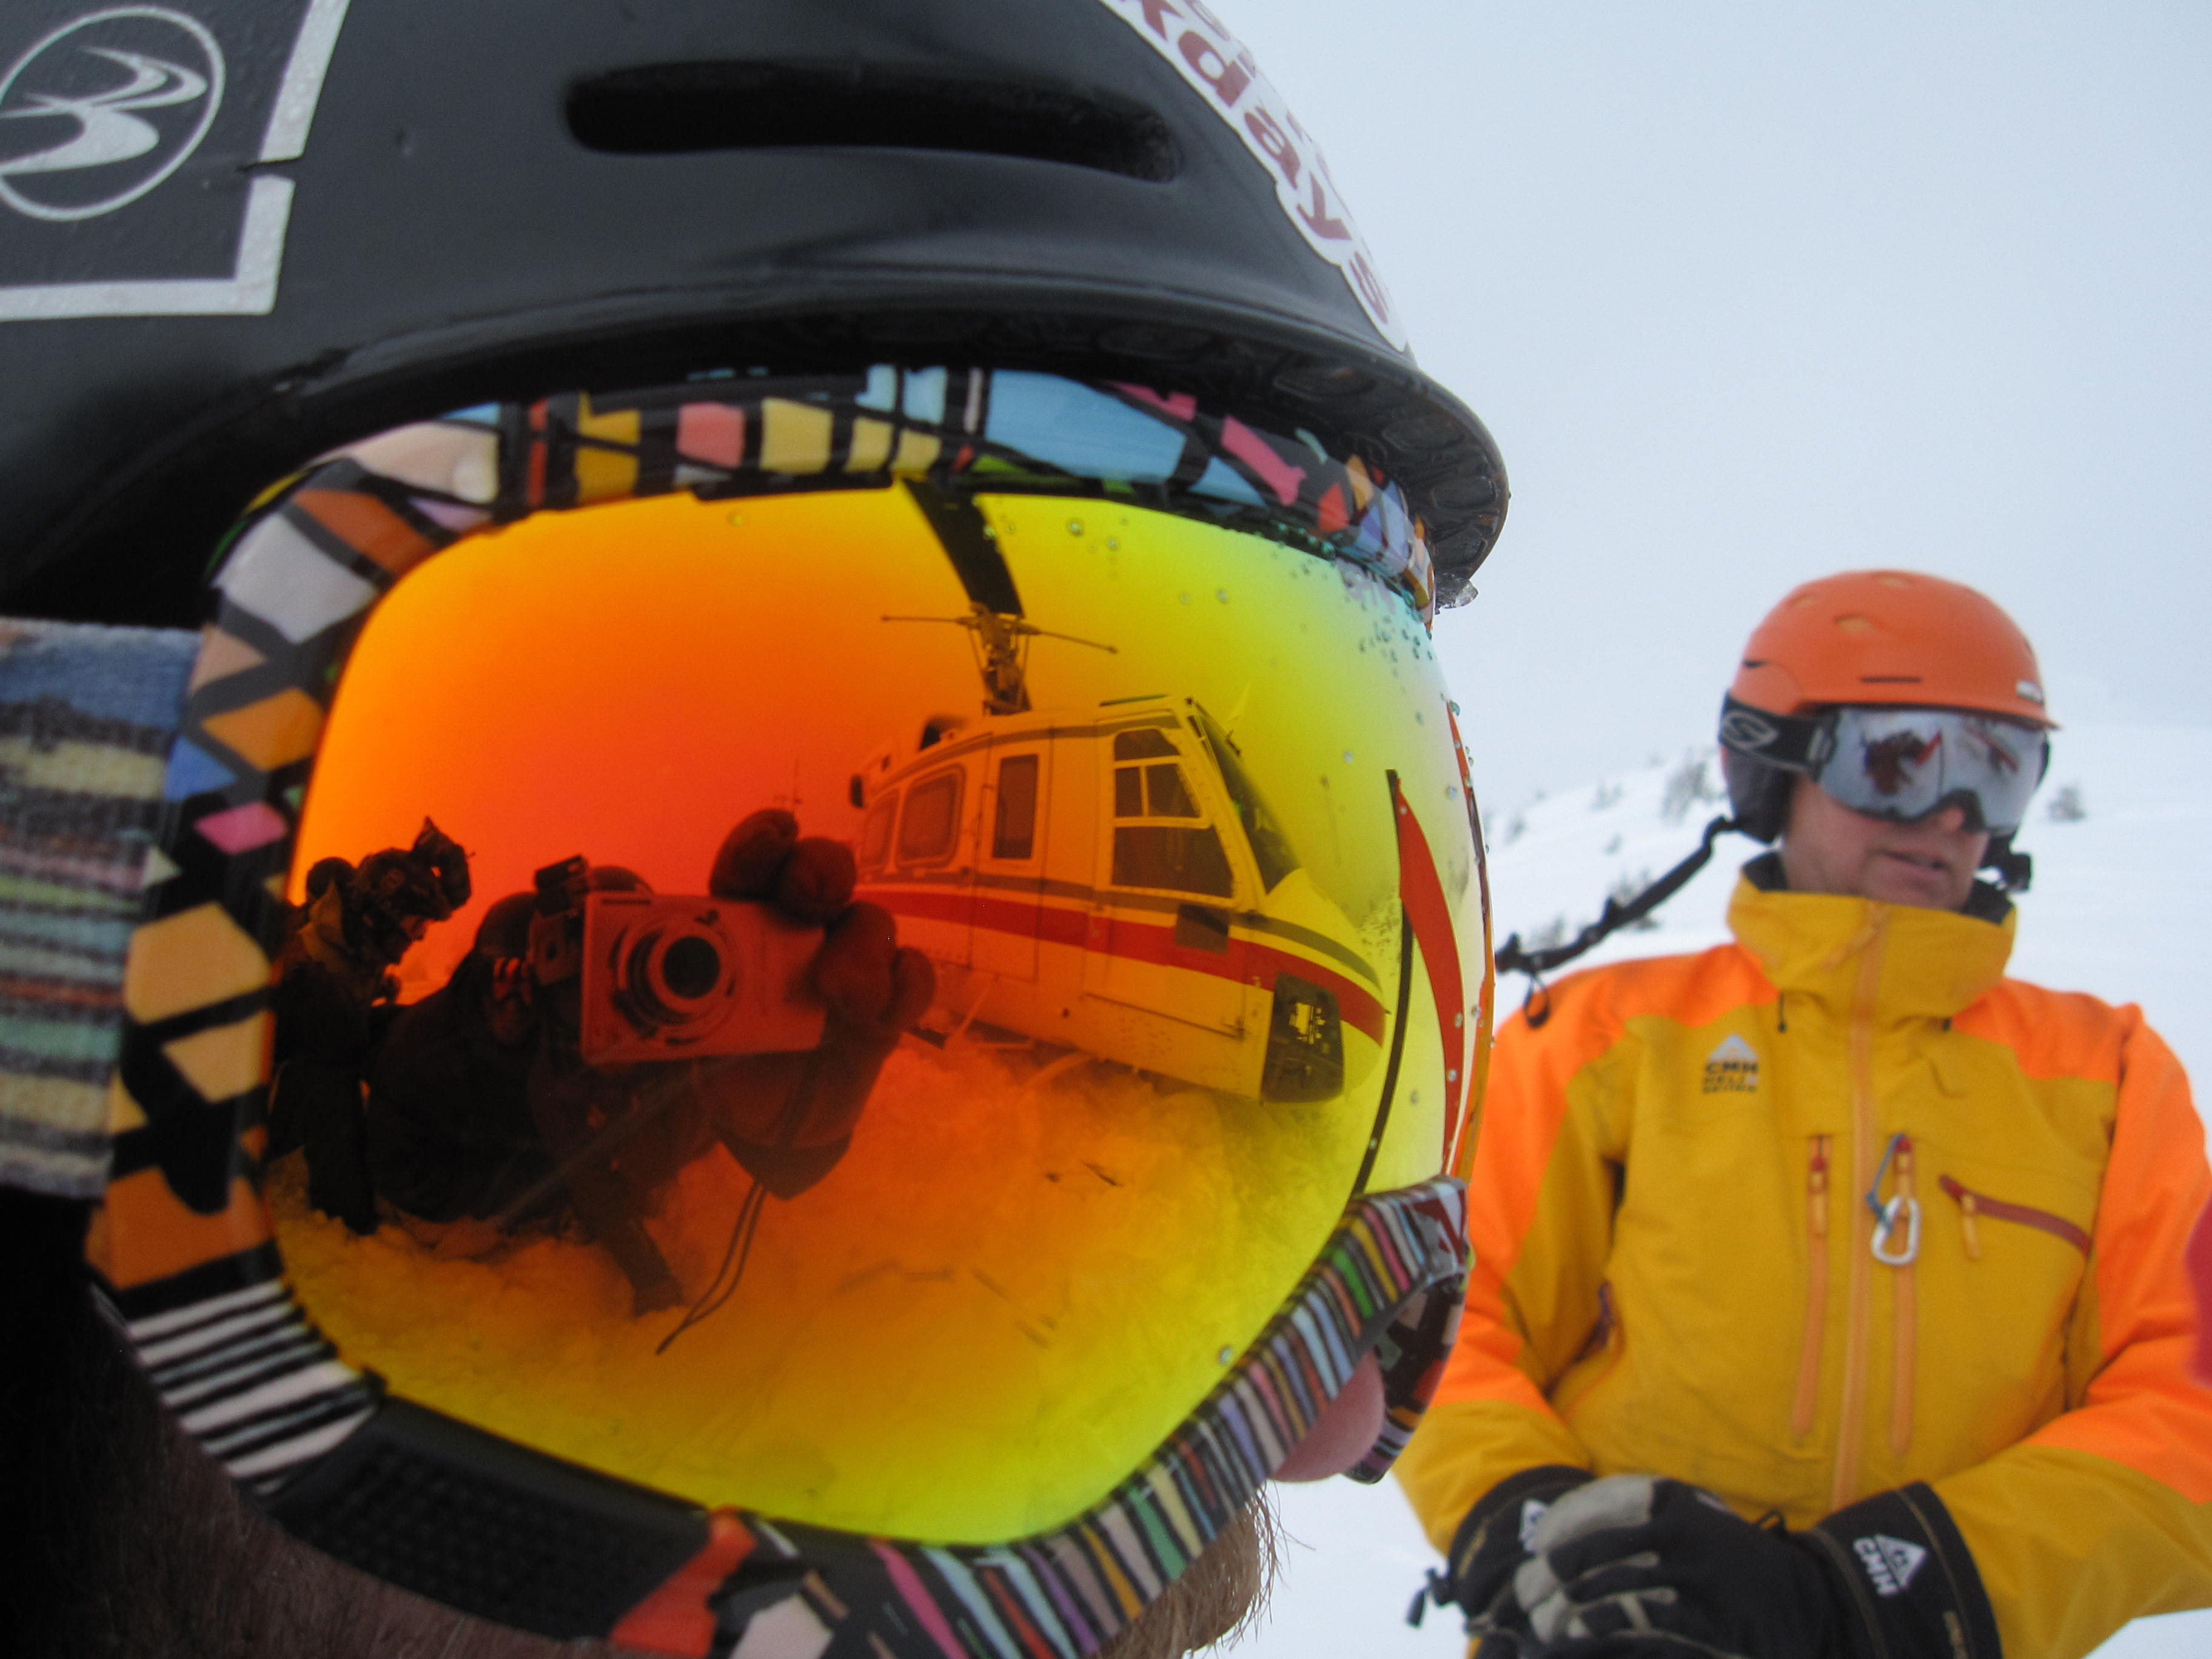 cool reflection in goggles